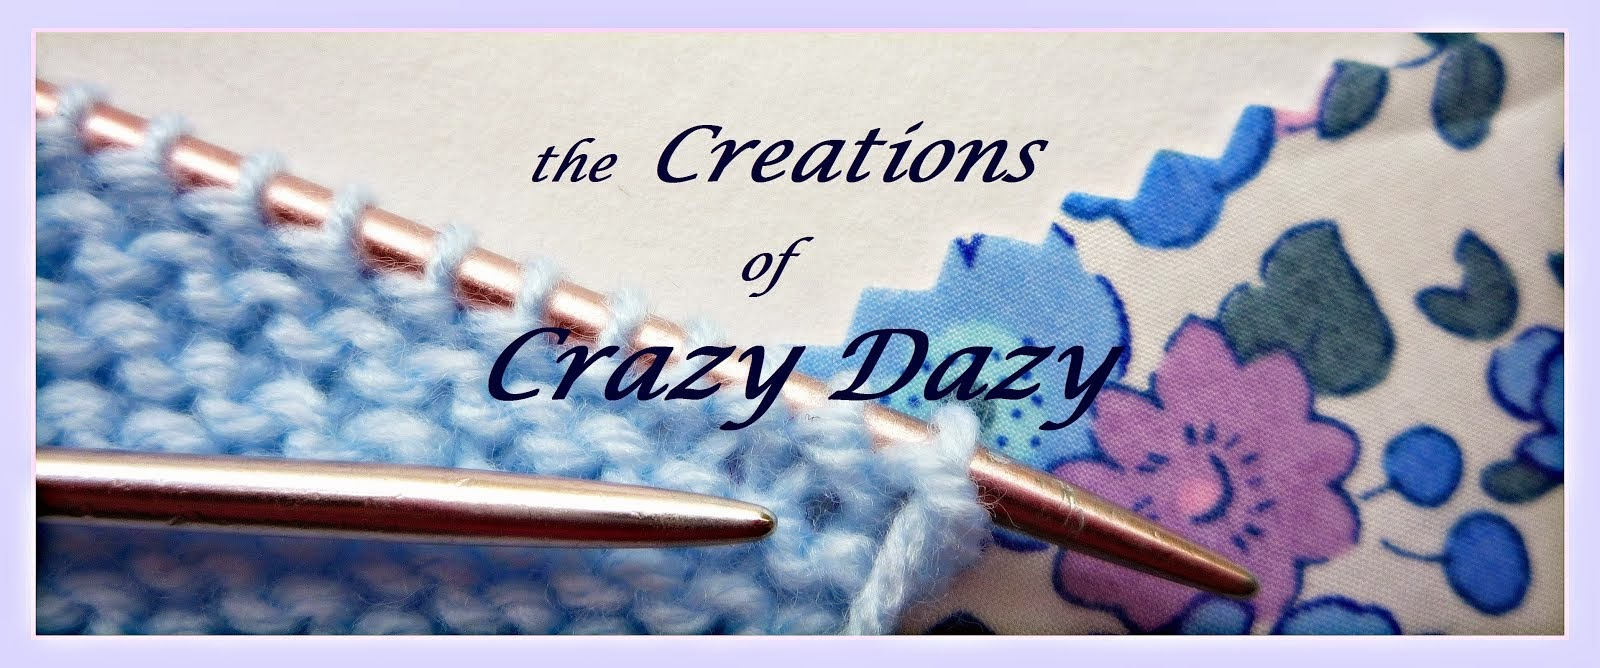 the Creations of Crazy Dazy